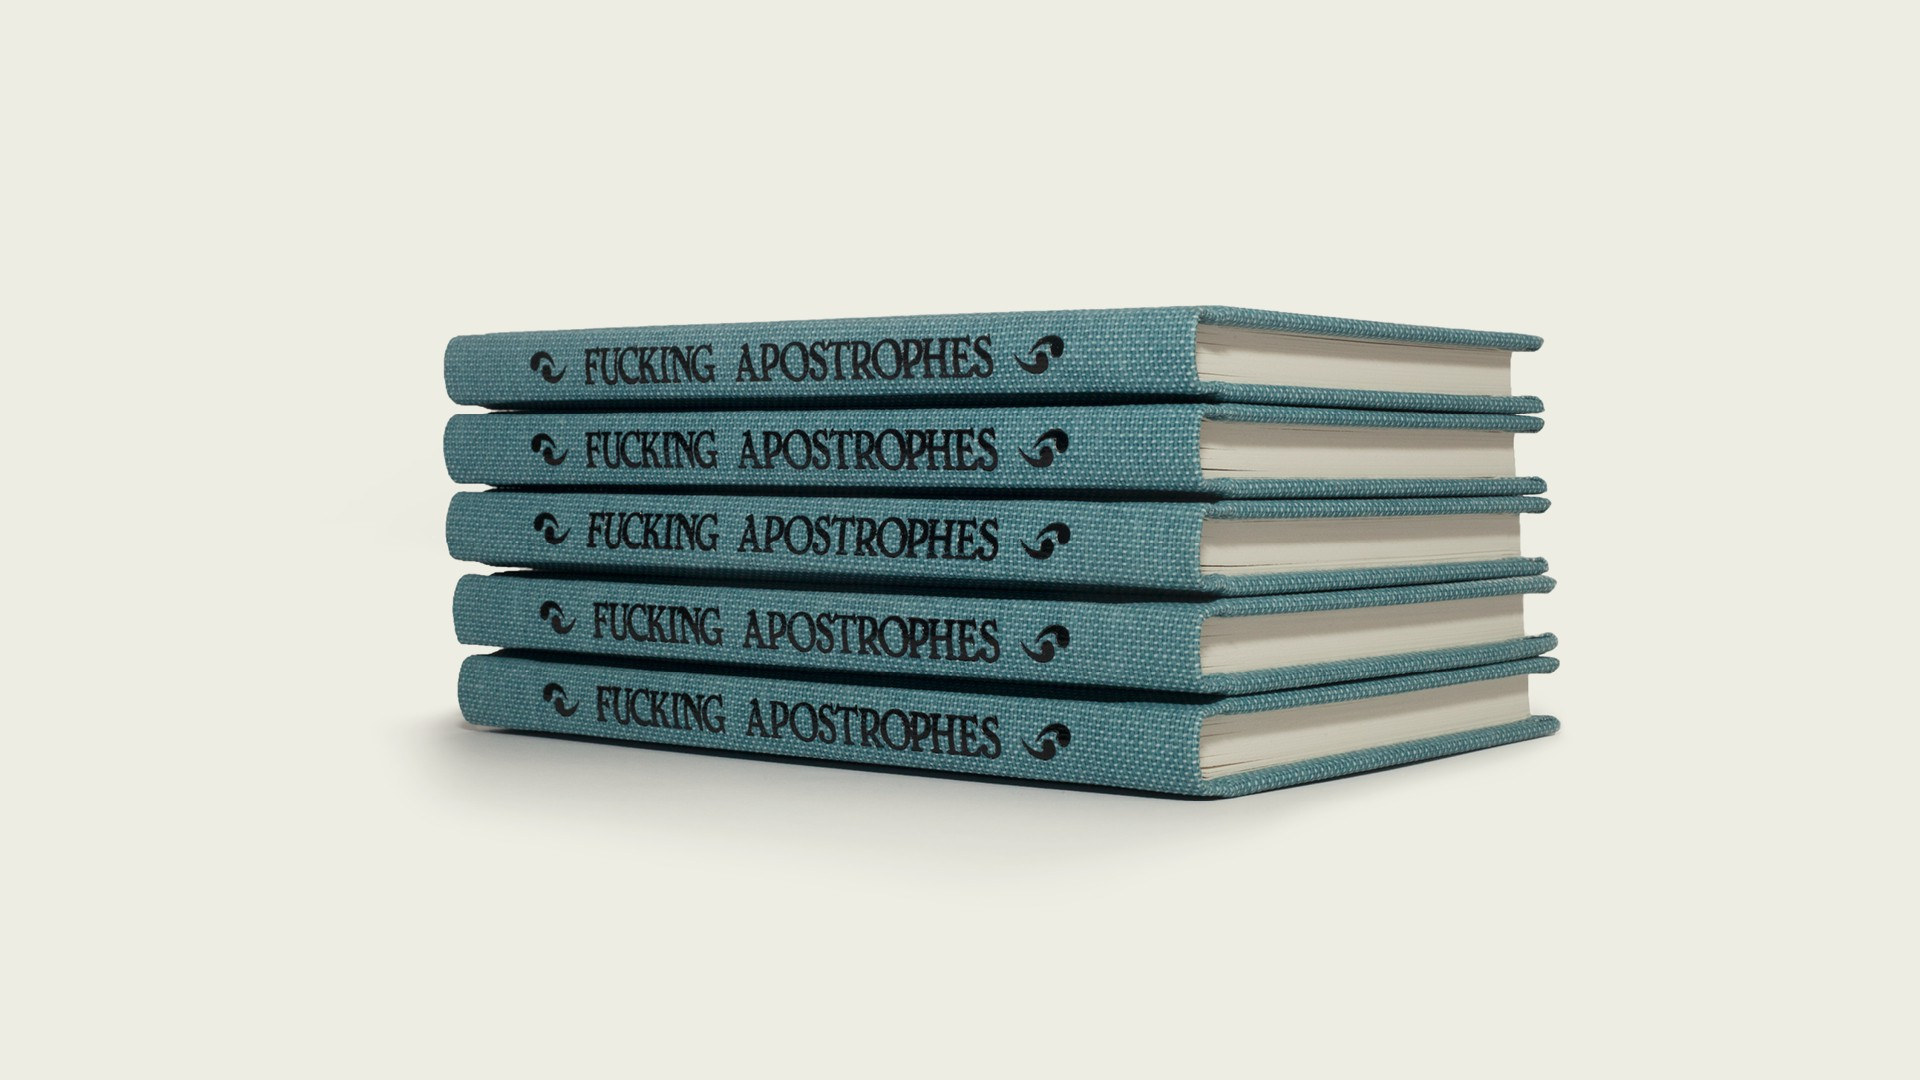 Fucking Apostrophes spines stacked}